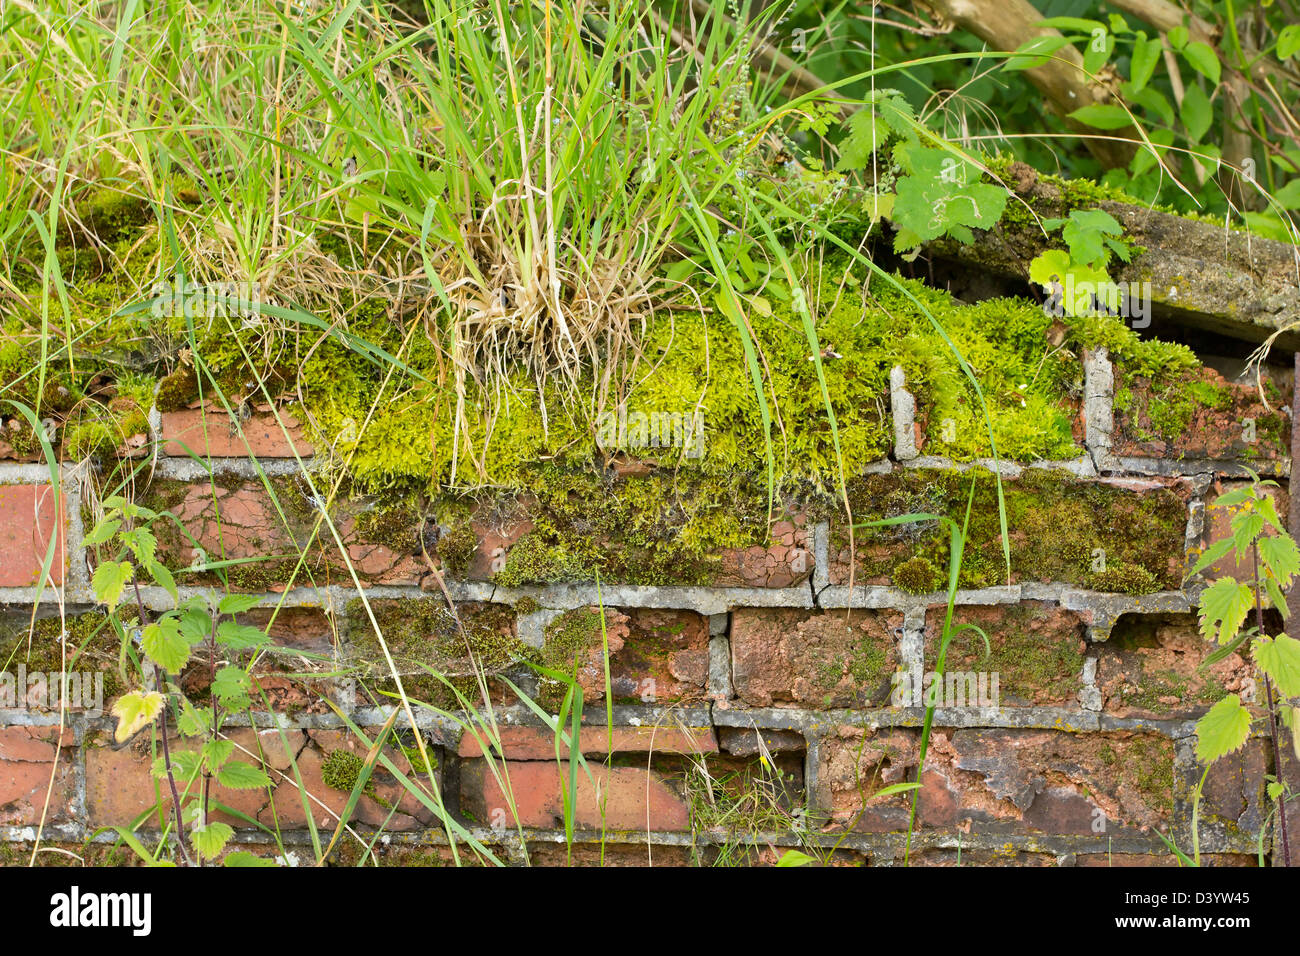 Background of a crumbling wall covered in moss and weeds - Stock Image